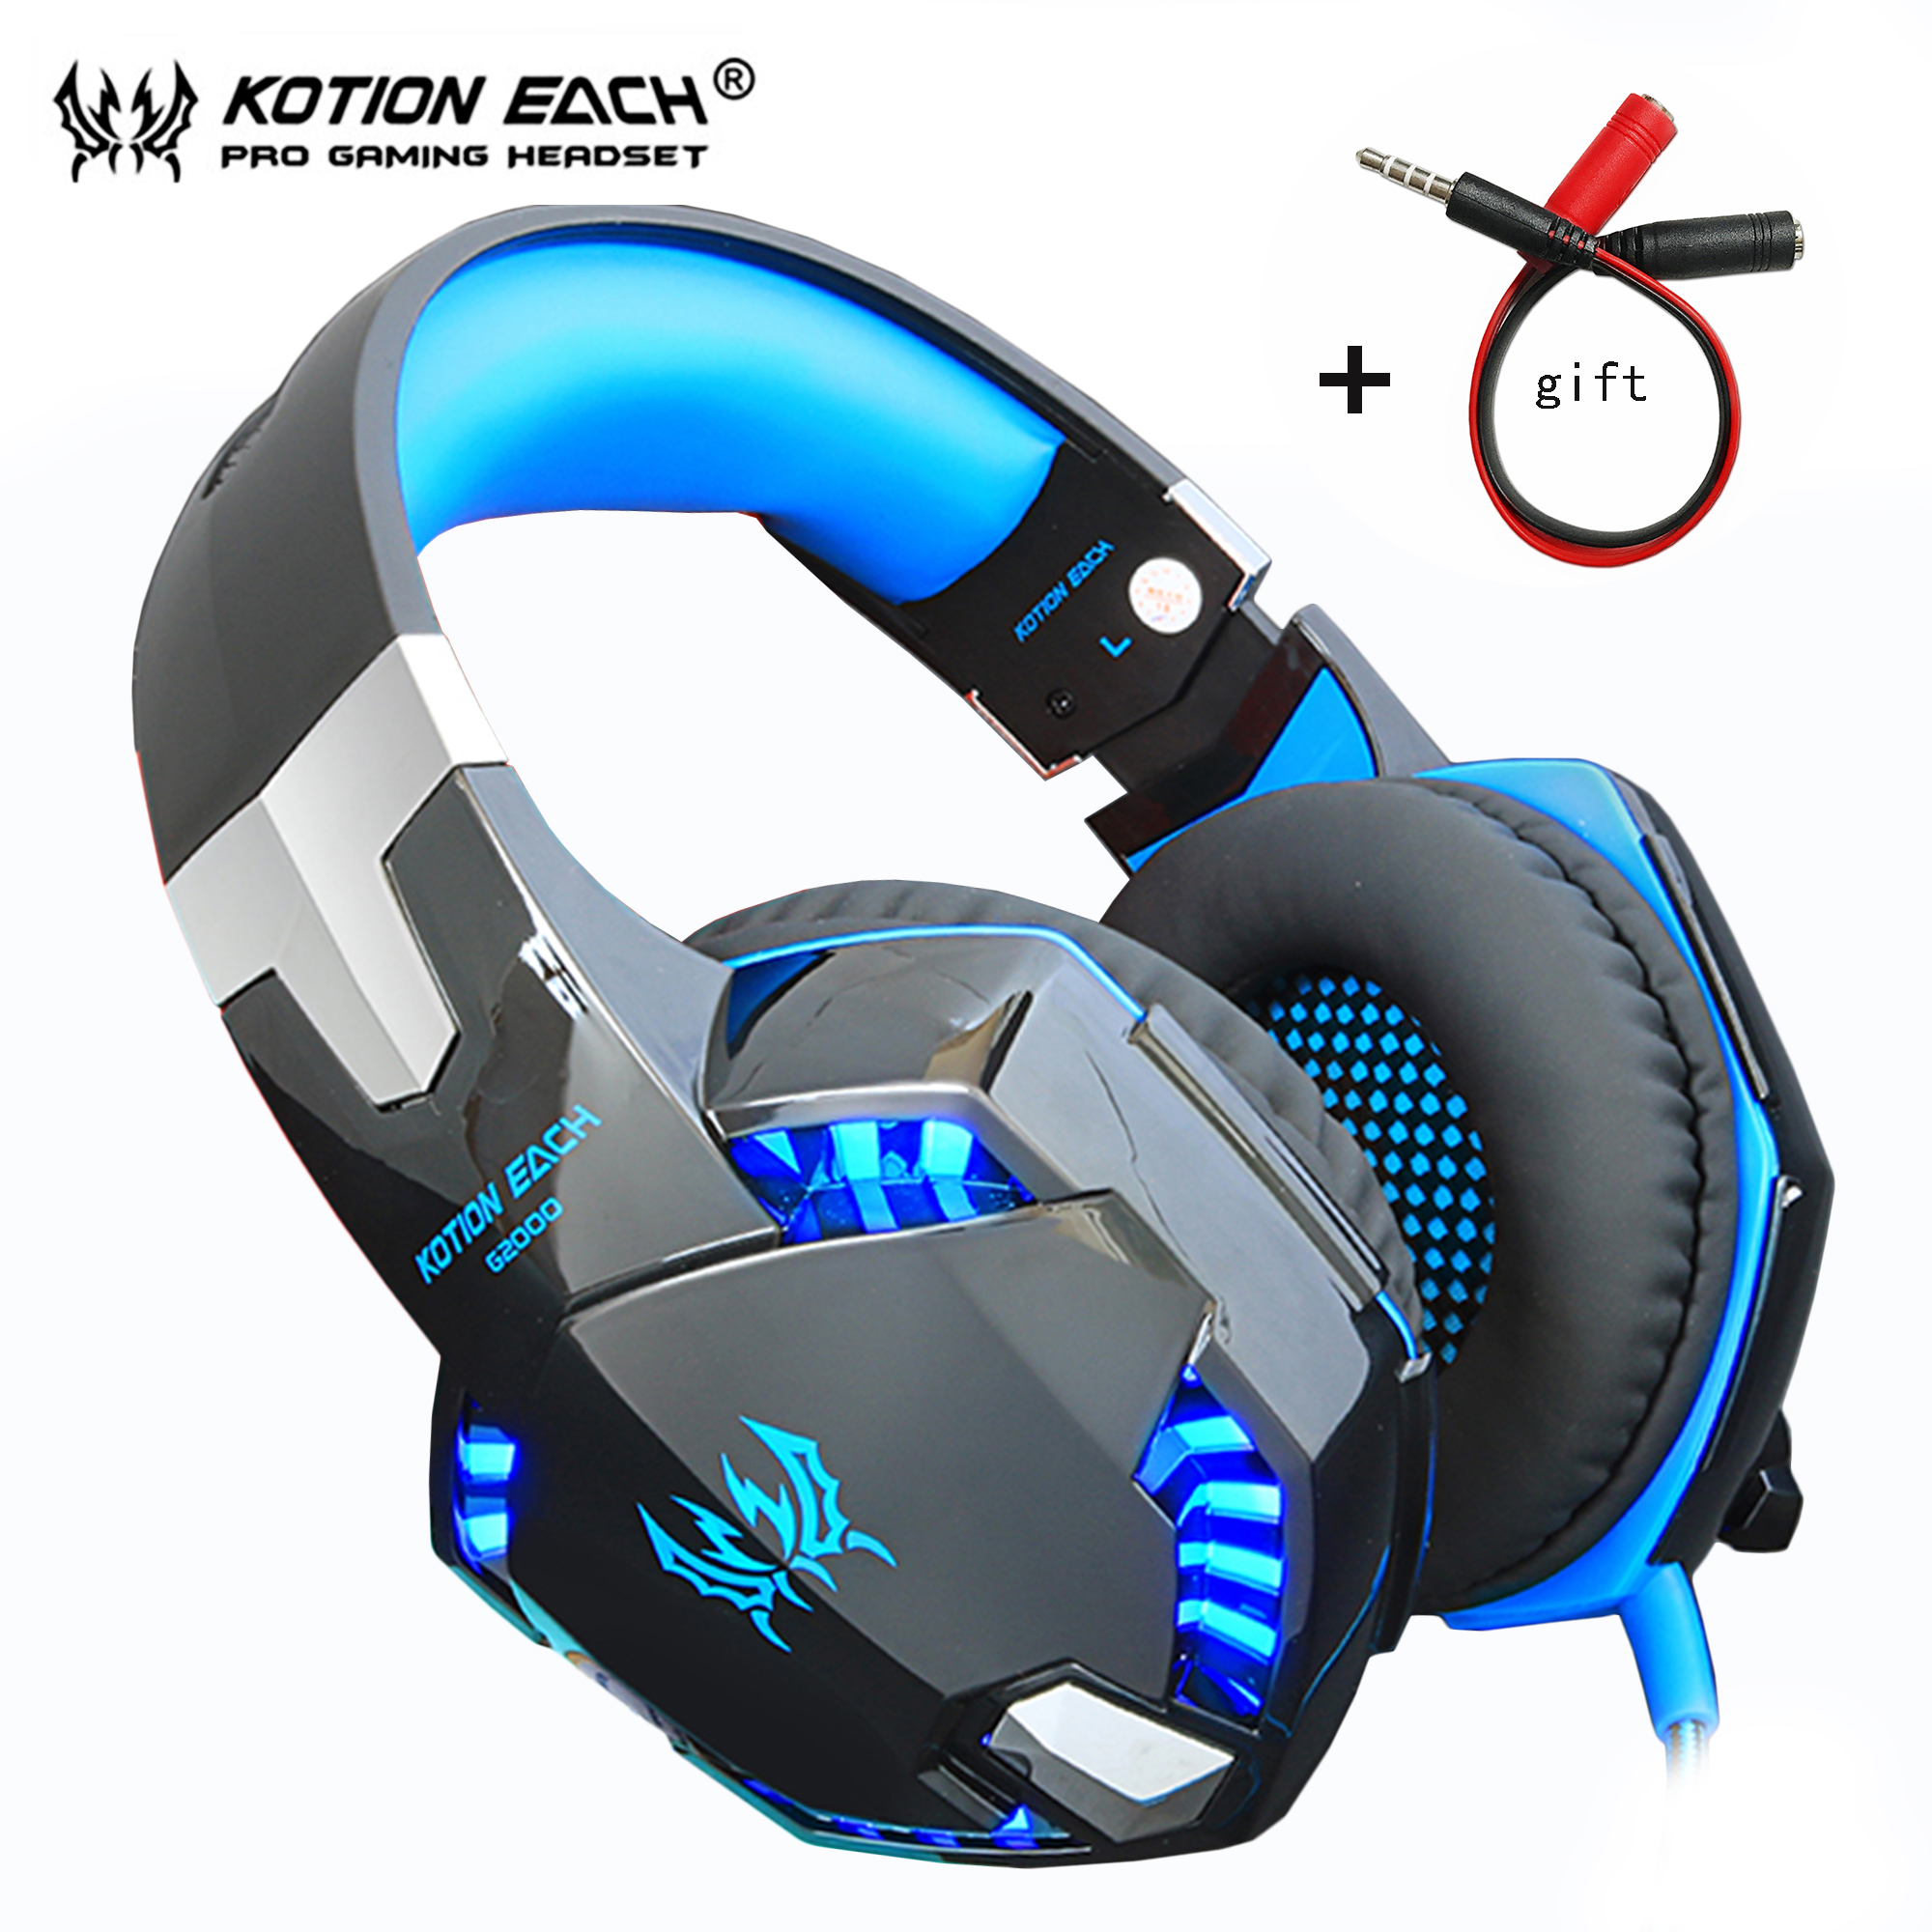 Gaming Headphones Earphones Headset Stereo Bass Pro Gamer For Mobile Phone Ps4 New Xbox Pc Computer Headphone With Microphone Headphone Headset Aliexpress